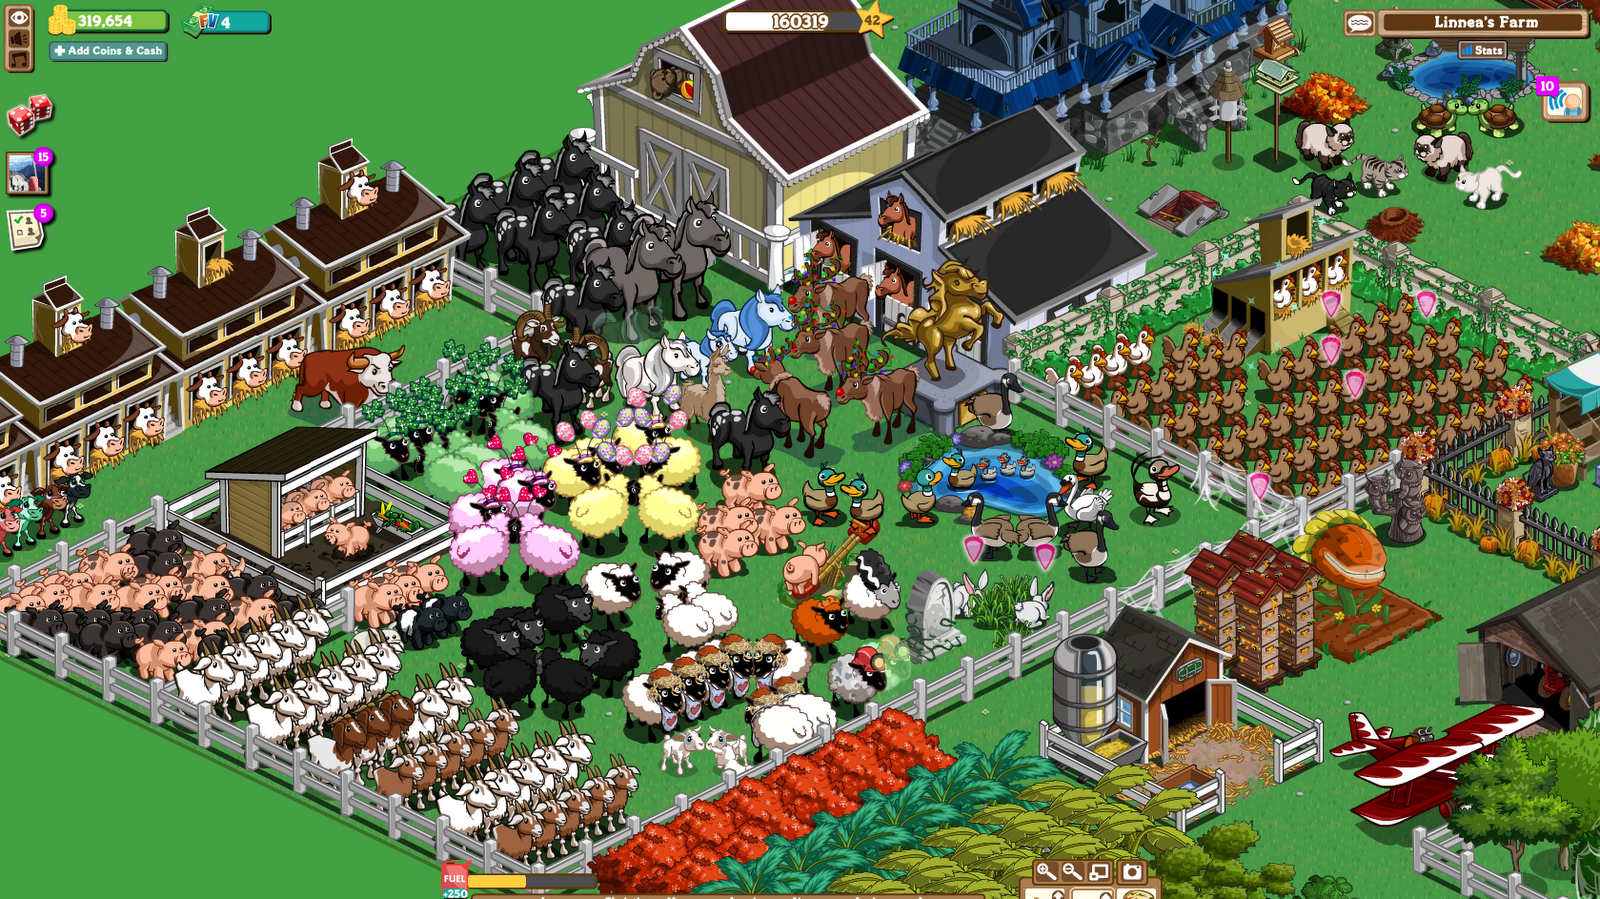 Play Game Farmville Zynga Facebook